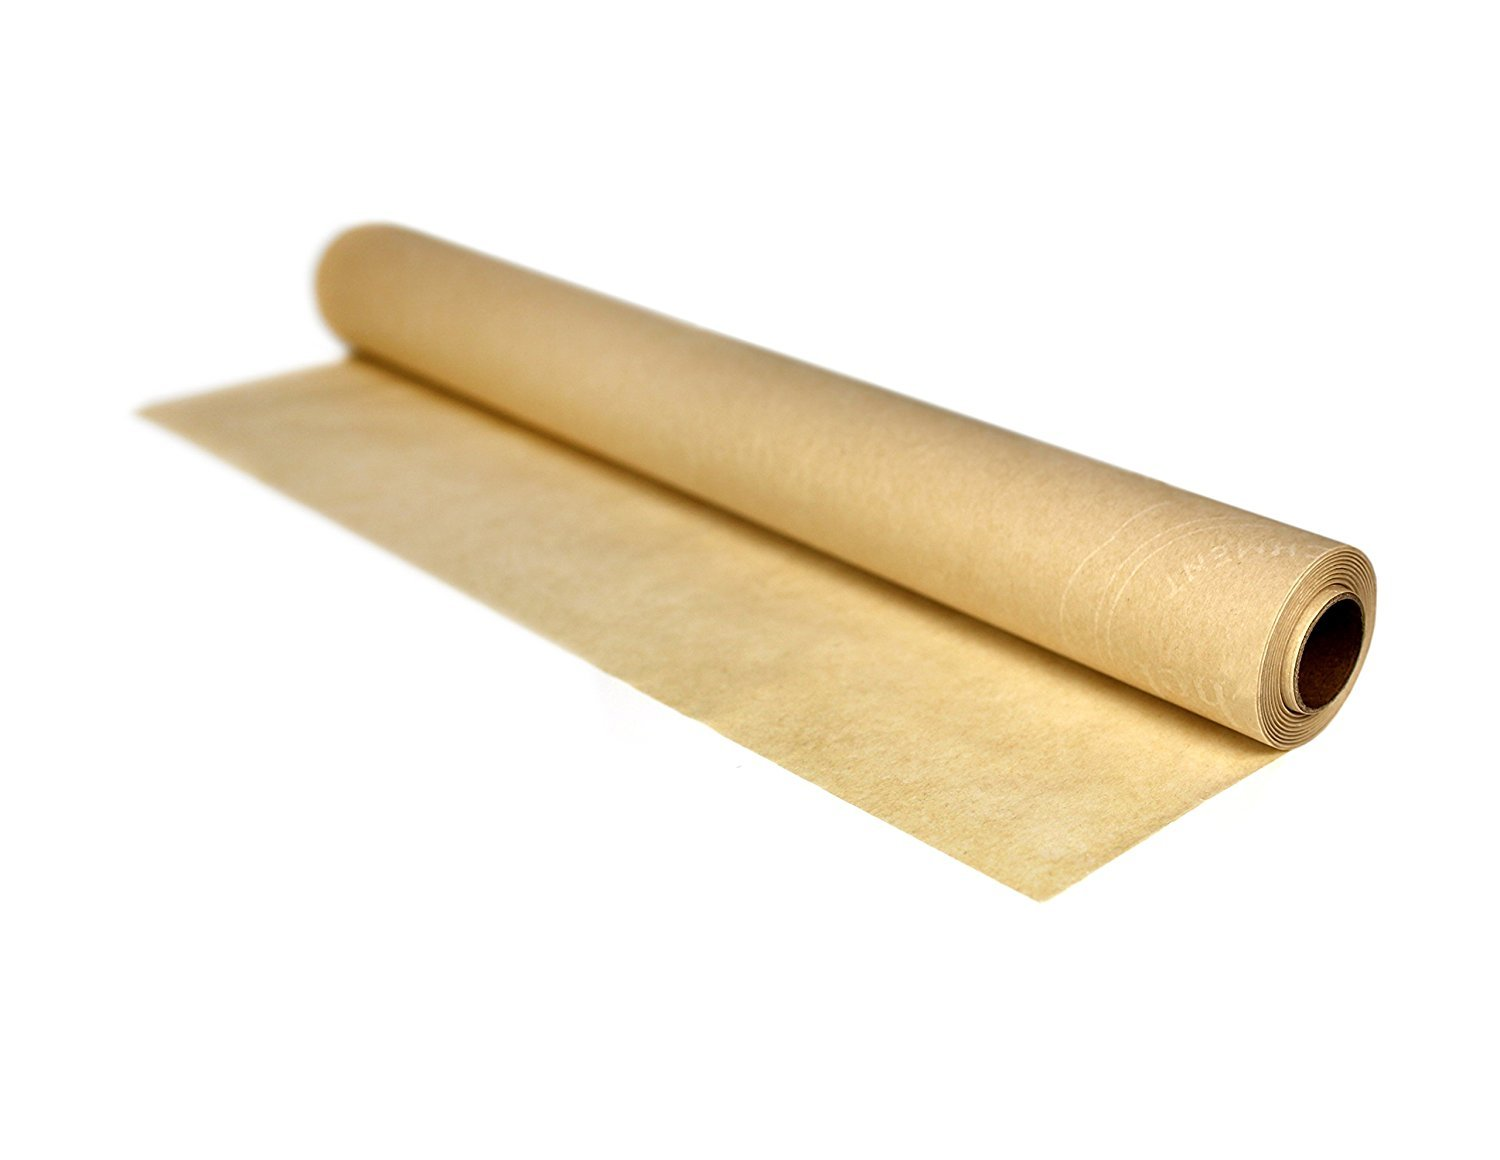 ChicWrap Culinary Parchment Paper Refill Roll - 82 Square Feet by ChicWrap